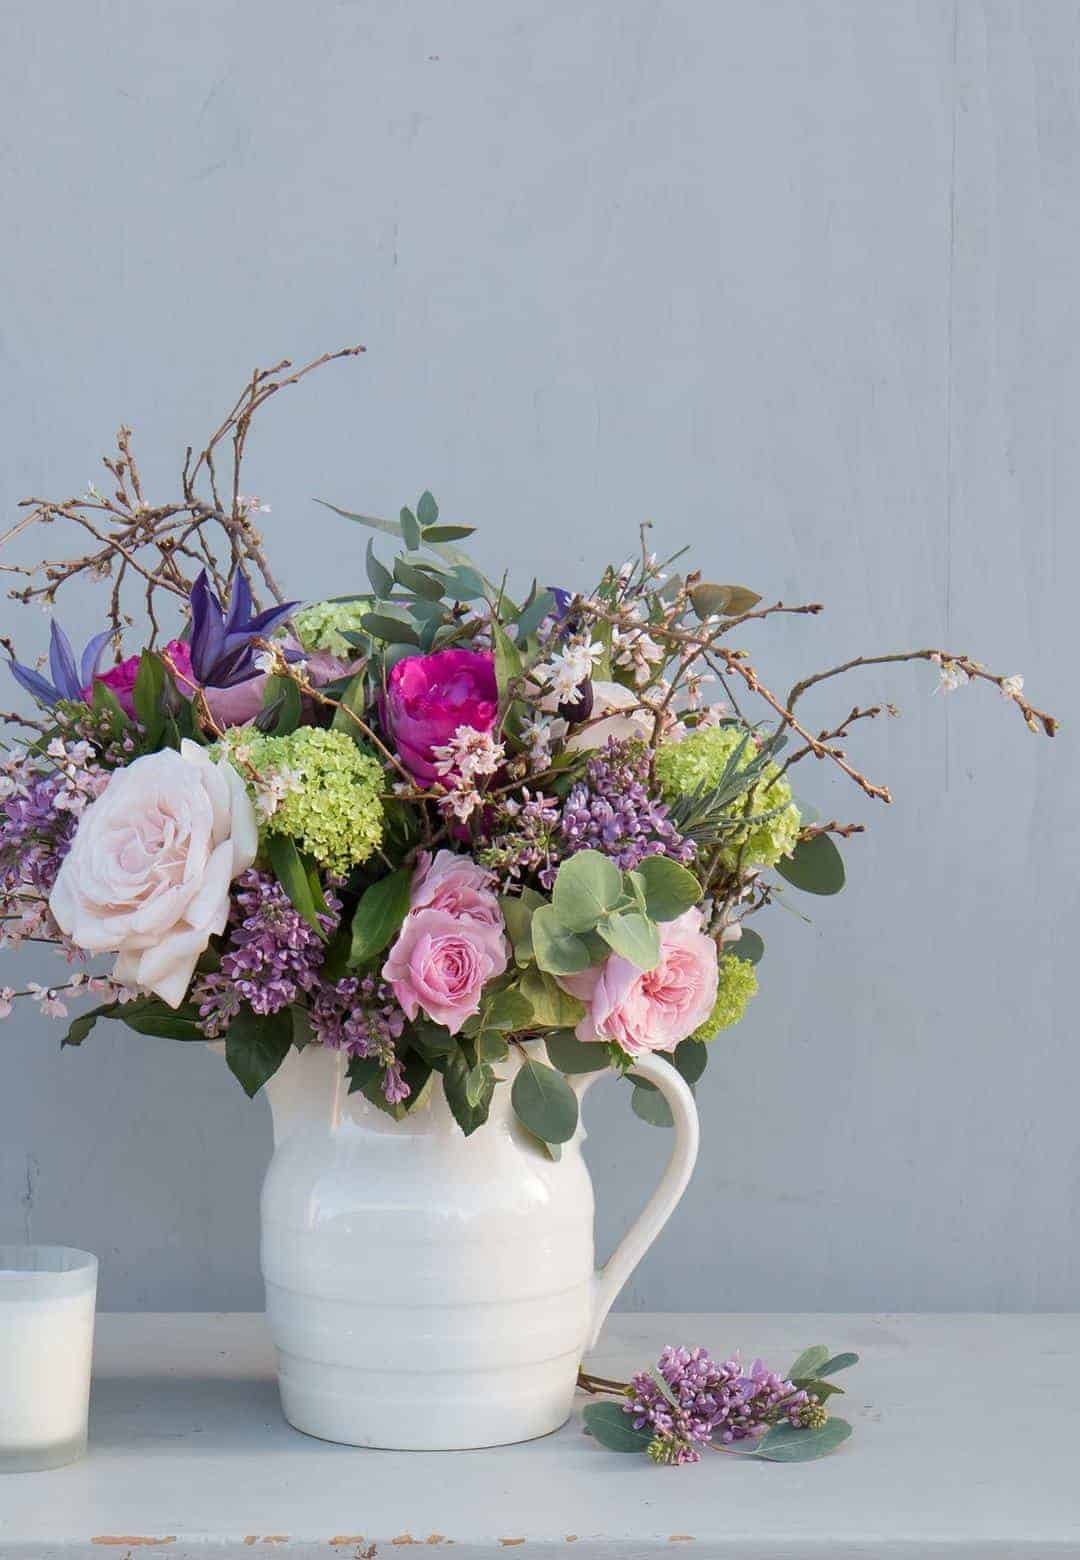 love these simple spring flowers in white creamware jug by The Real Flower Company - pale pink early roses, blossom, twigs, lilac and aromatic herbs. Click through for more beautiful spring flower arrangement ideas you'll love